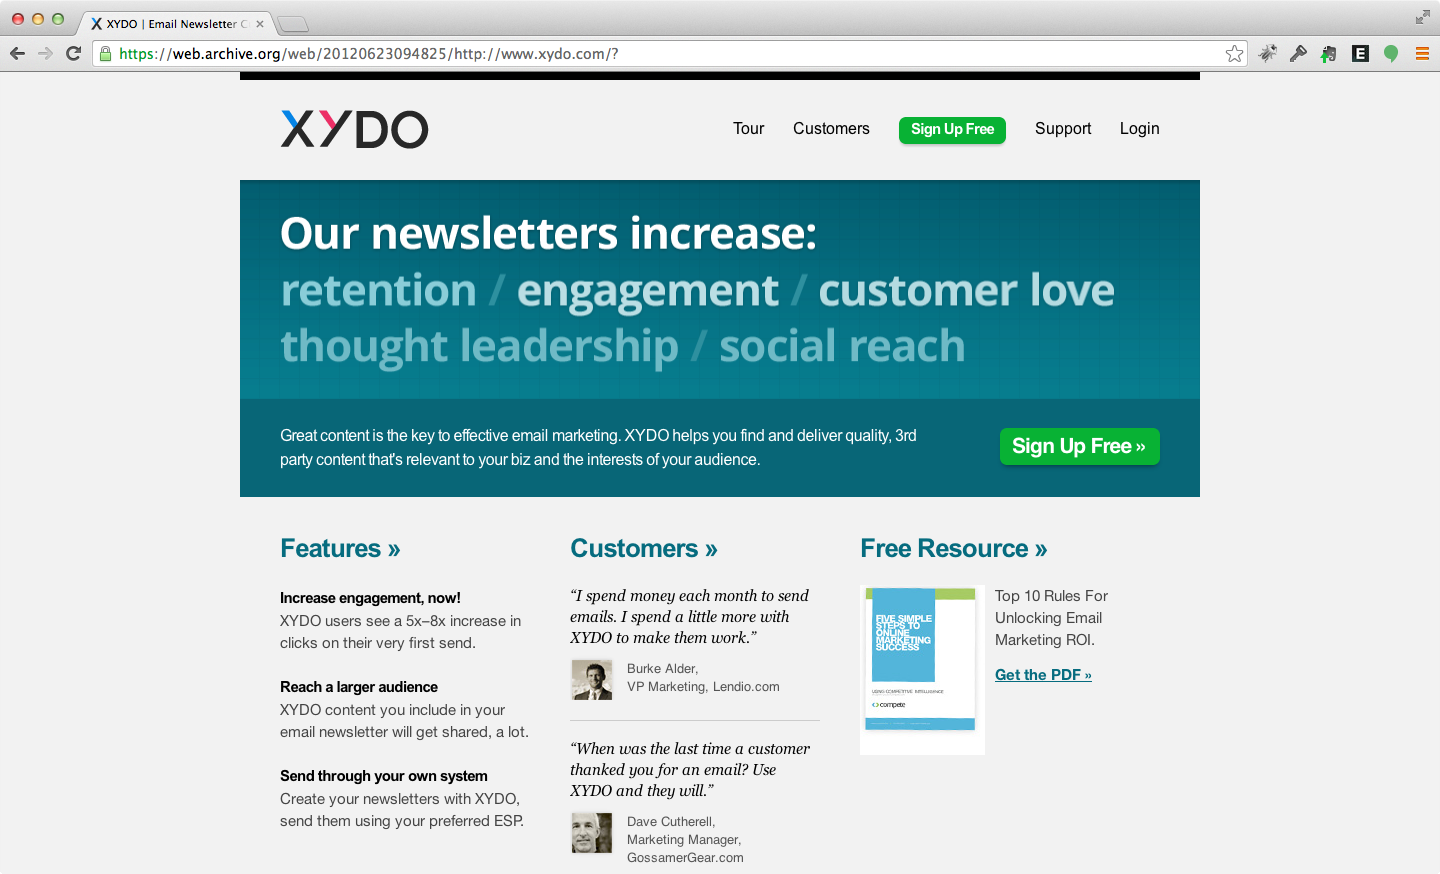 XYDO - Simple newsletter creation service for small businesses.